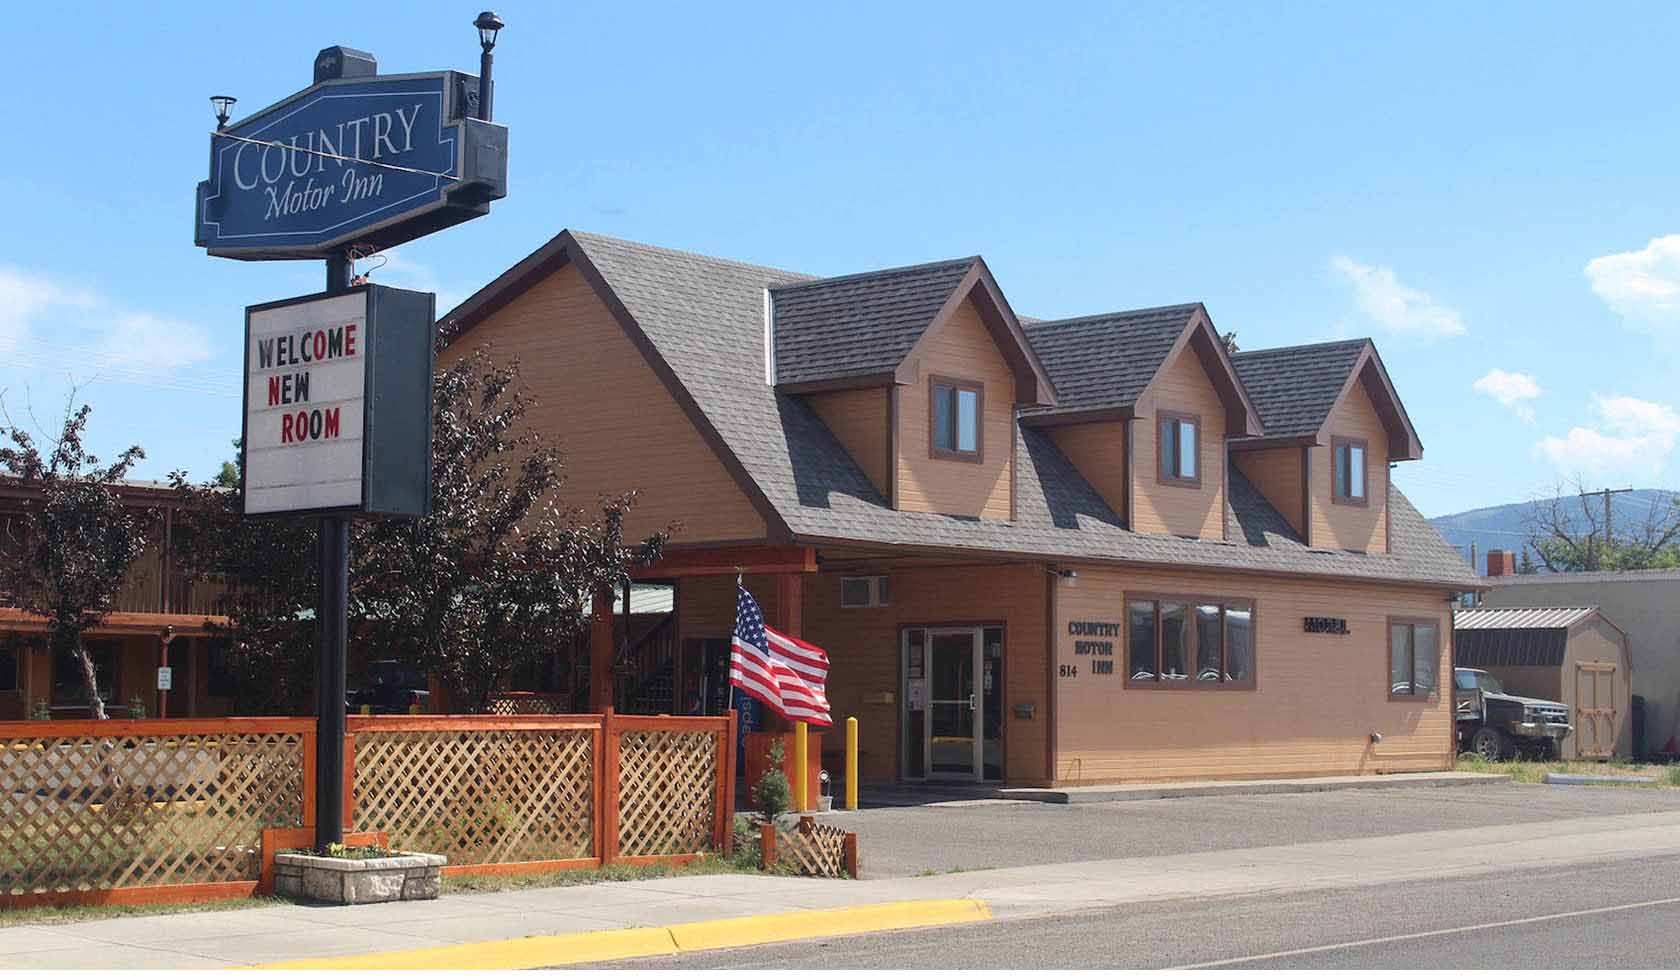 Country Motor Inn profile image